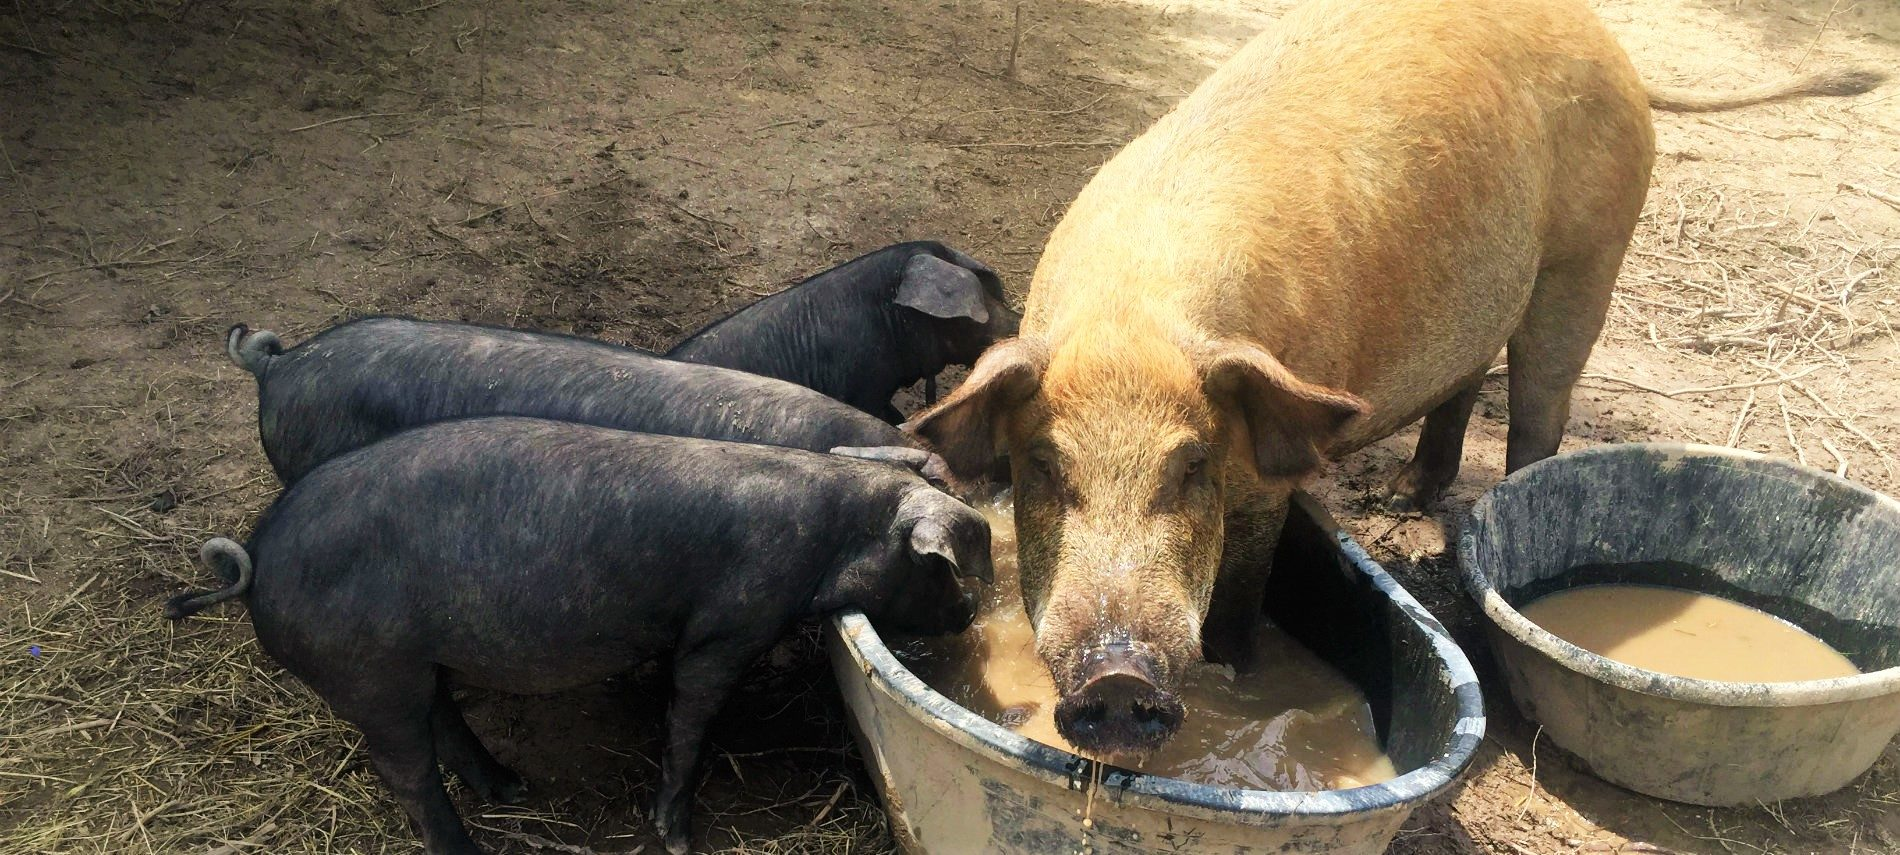 A mama pig and three babies at a trough